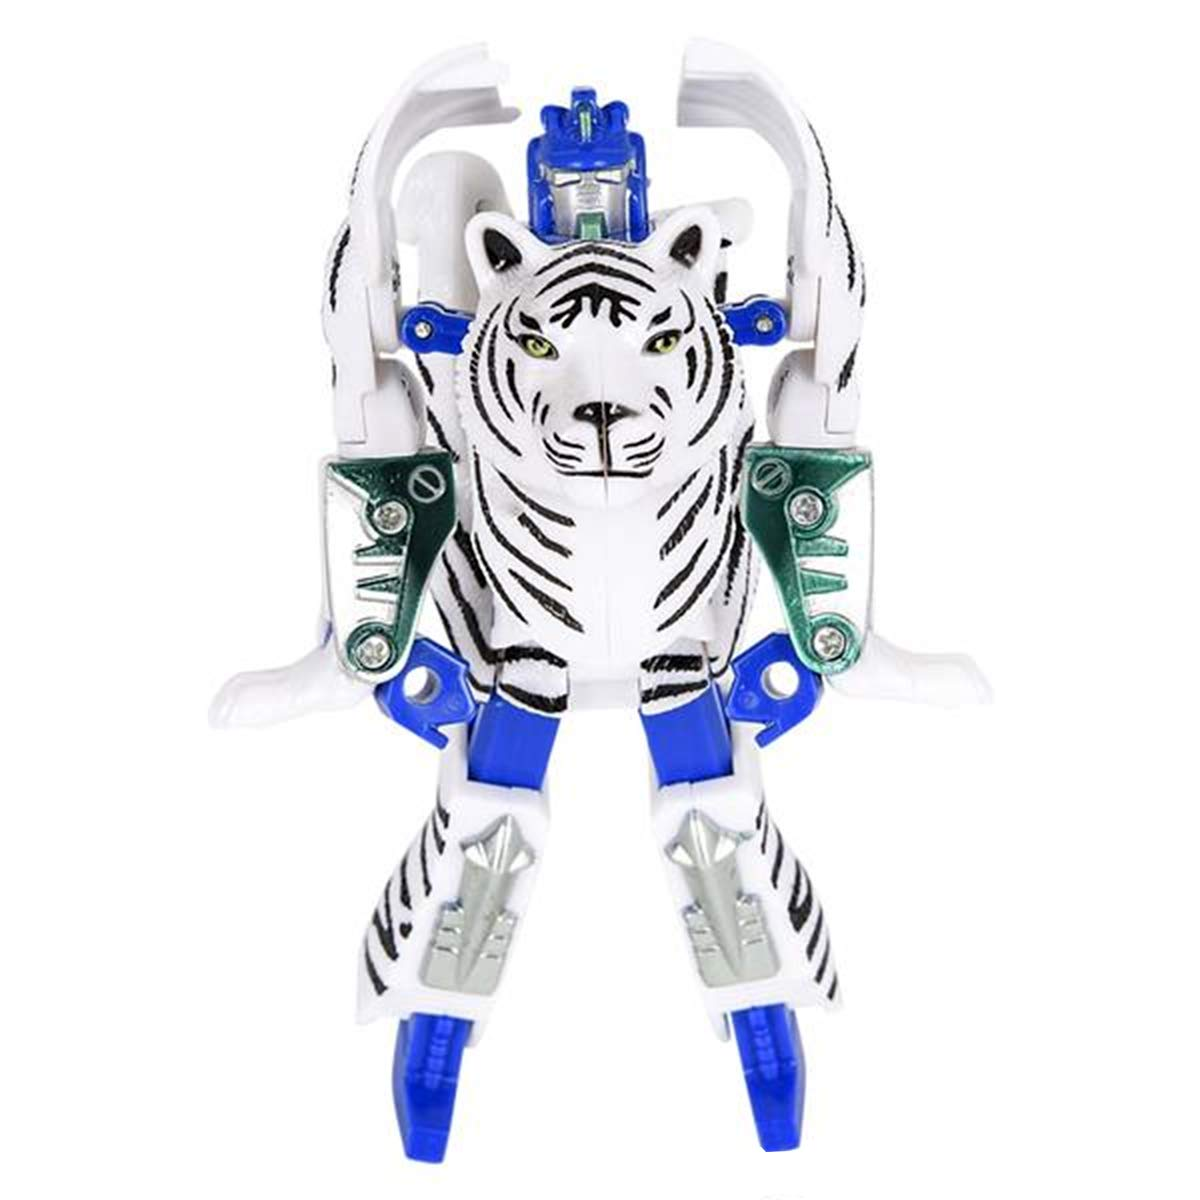 Transforming Action Figure Great Gift for Both Girls and Boys Forest /& Twelfth White Tiger 4 Animal Toys White Tiger Changes from a Detailed Animal Toy to a Unique Robot Toy in Seconds